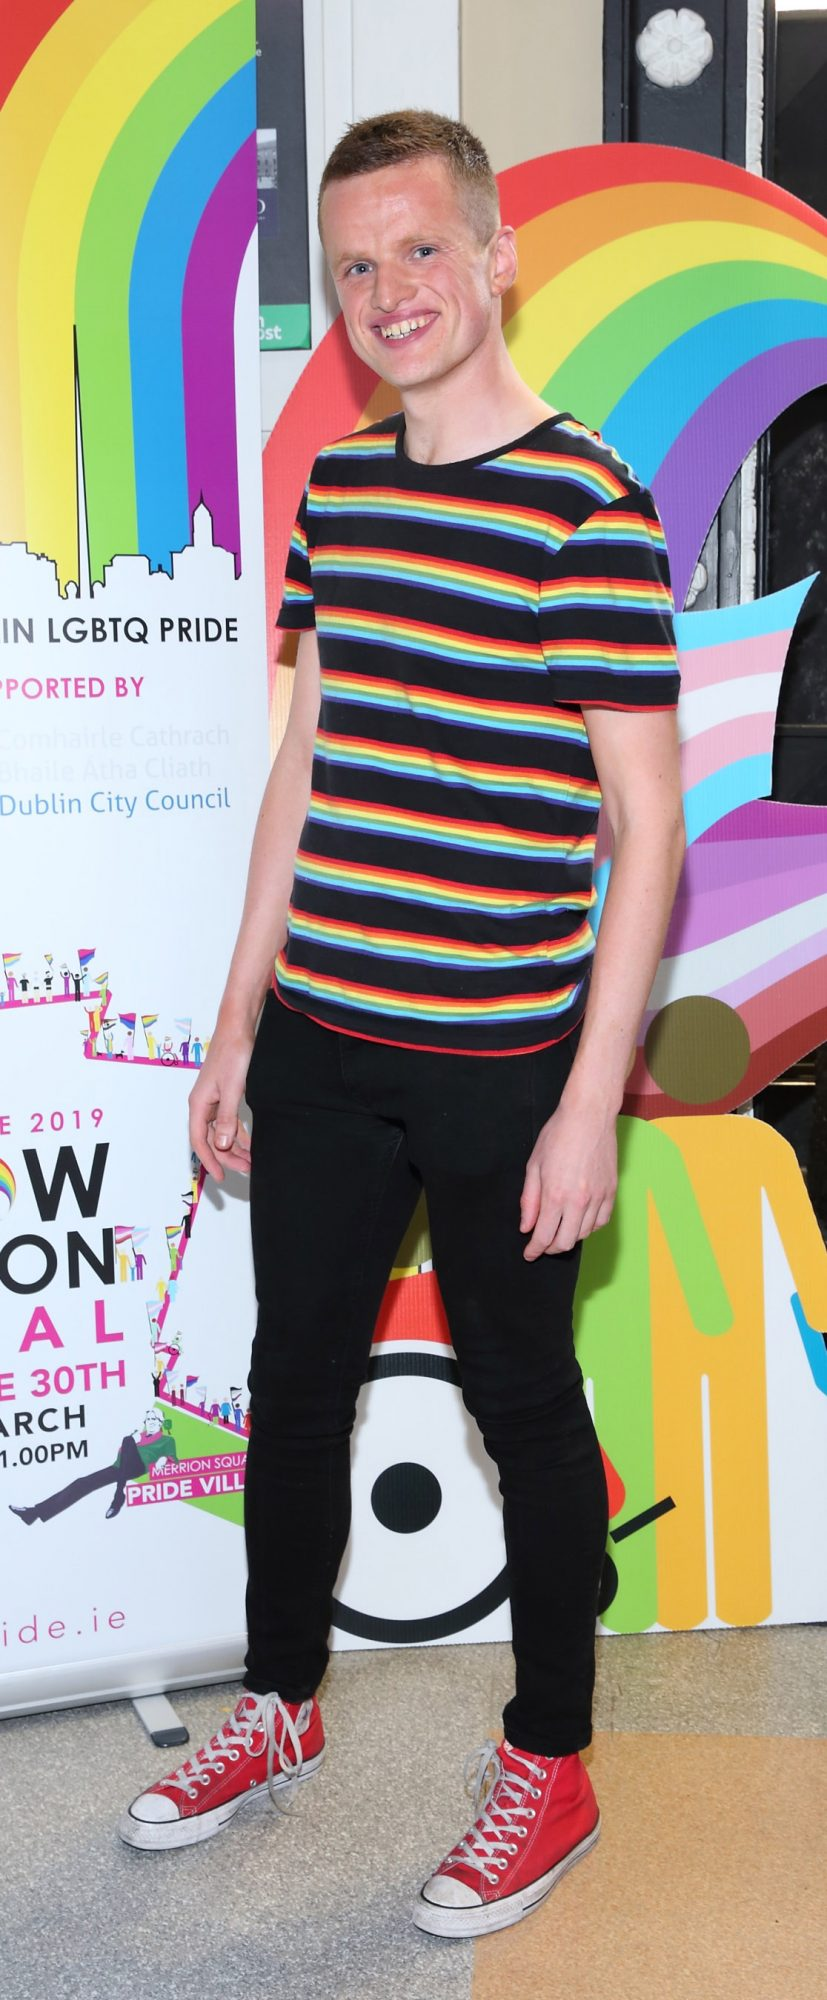 Chris Harkin pictured at the launch of the Dublin LGBTQ+ Pride Festival 2019 in partnership with platinum sponsor Tesco at the GPO, Dublin. Picture: Brian McEvoy Photography